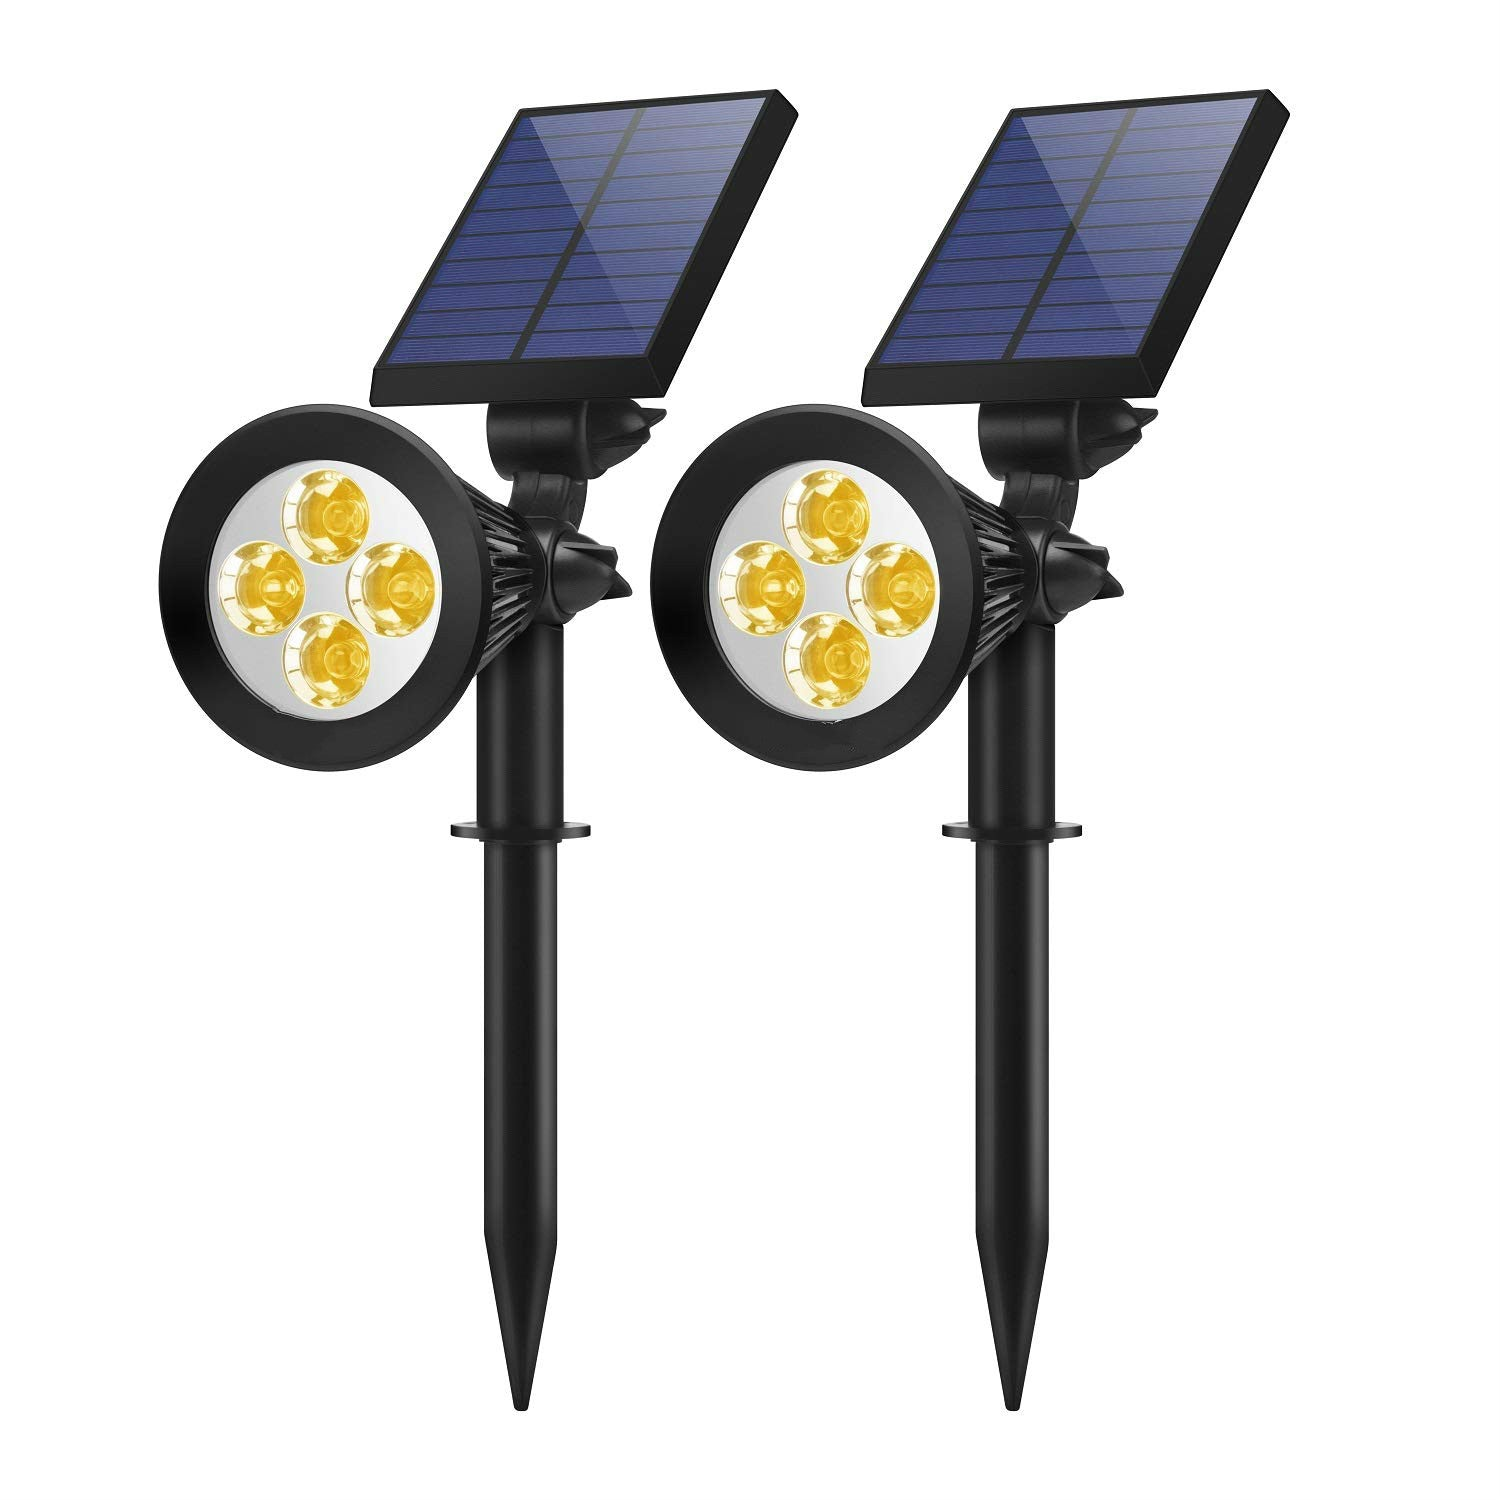 Solar Lights Outdoor, 2-in-1 Solar Spotlights Powered 7 LED Adjustable Wall Light Landscape Lighting, Bright and Dark Sensing, Auto On/Off for Yard, Pathway, Walkway, Garden, Driveway, 2 Pack